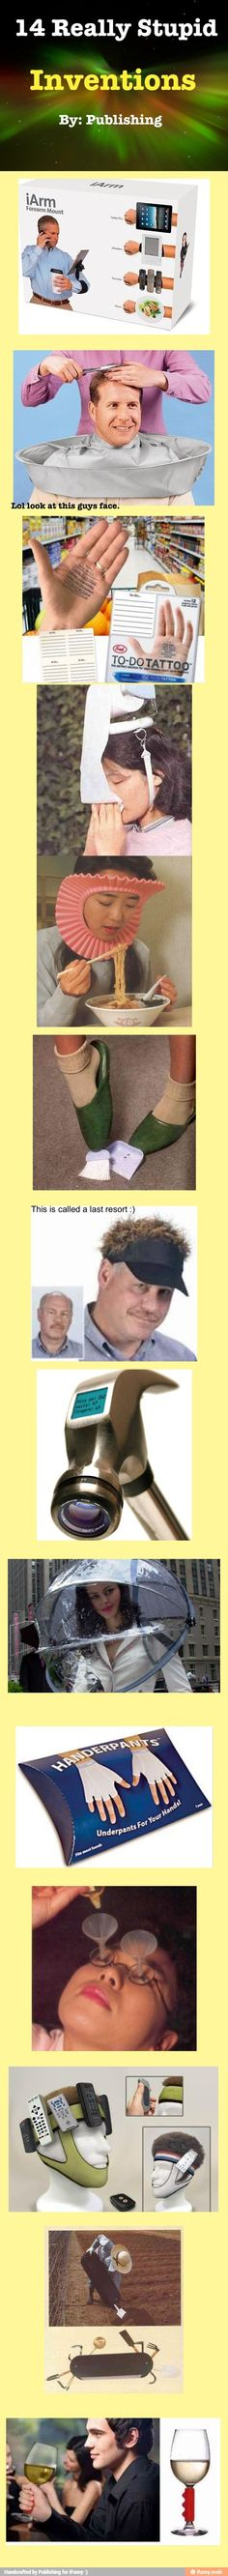 14 really stupid inventions / iFunny :)